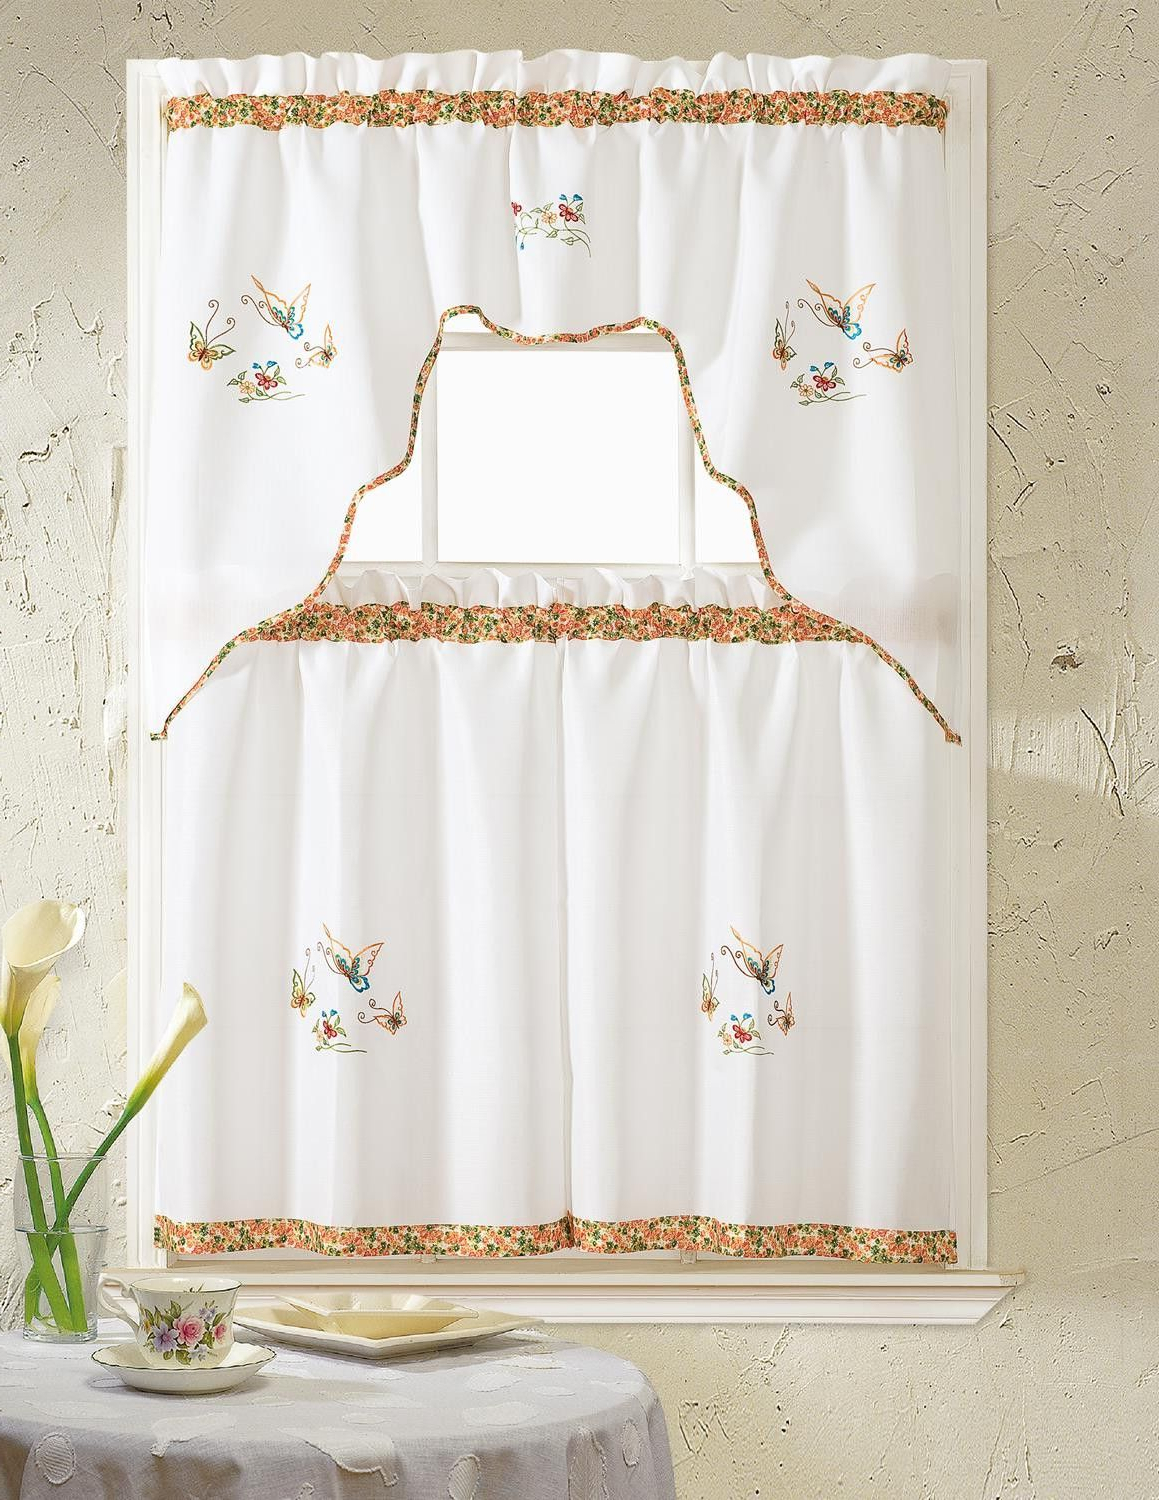 Urban Embroidered Tier And Valance Kitchen Curtain Tier Sets Within 2020 Grand Butterfly Embroidered Ruffle Kitchen Curtain Set (View 13 of 20)